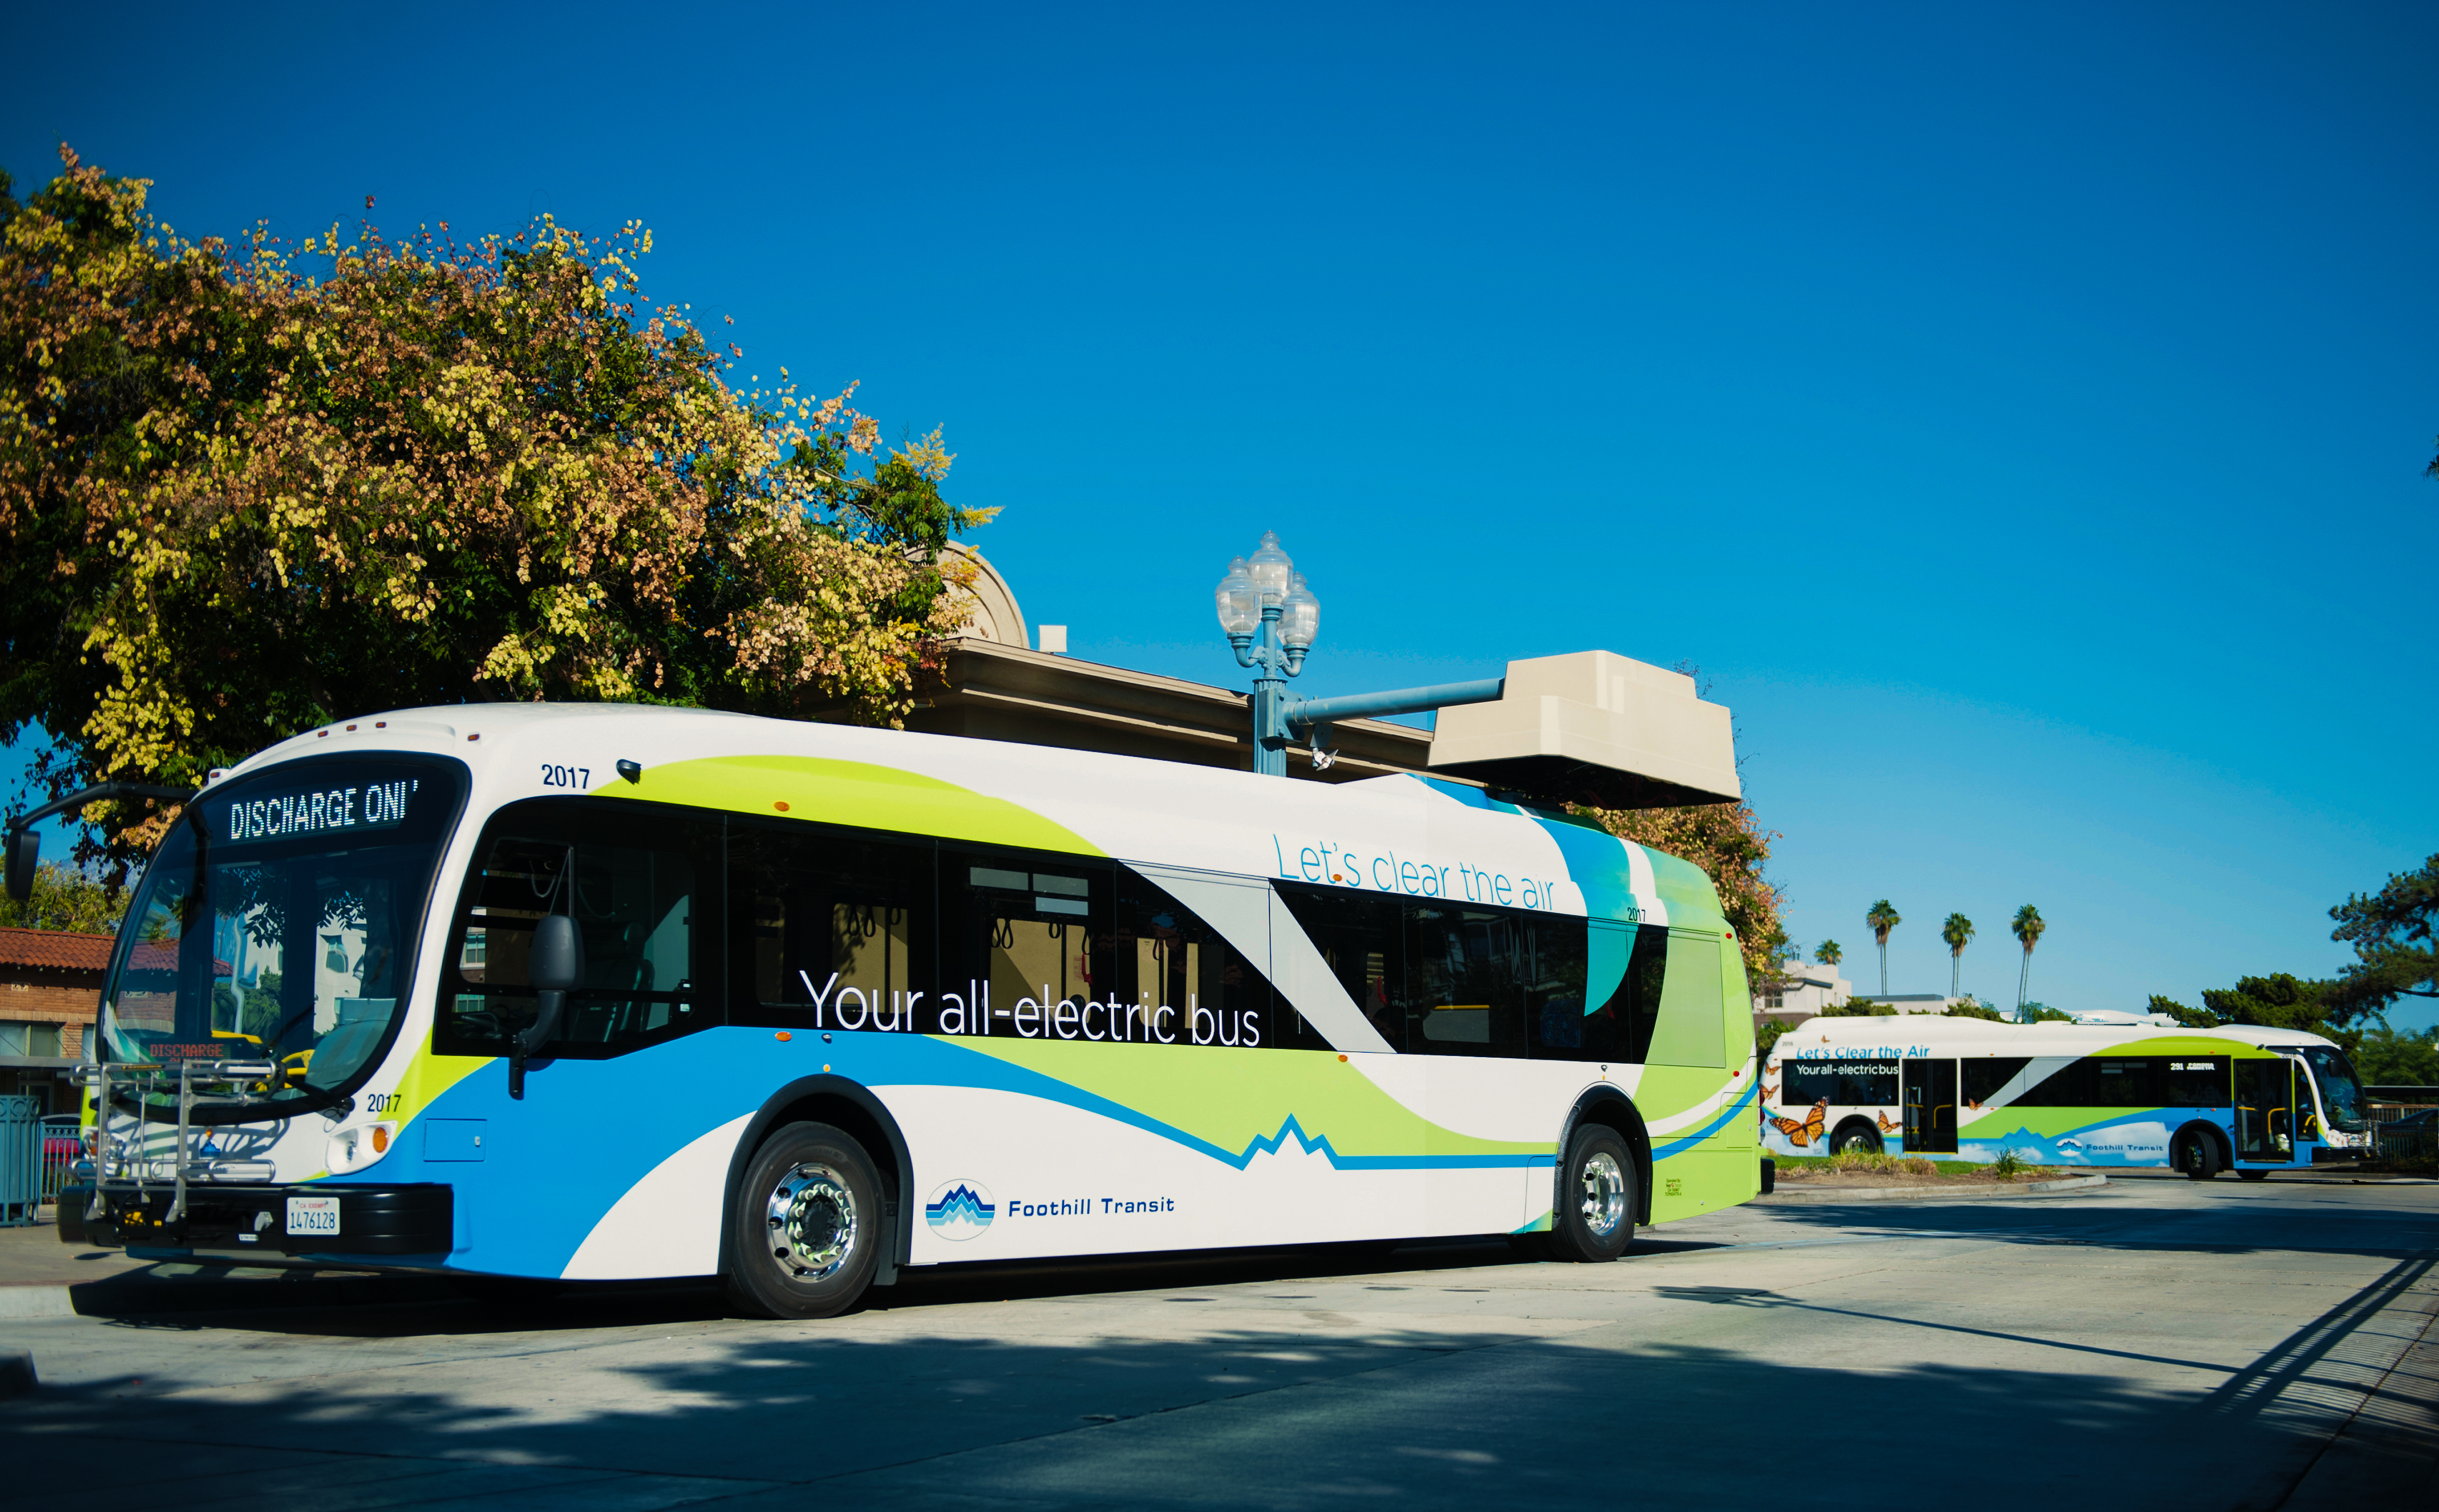 Foothill Transit Electric Buses